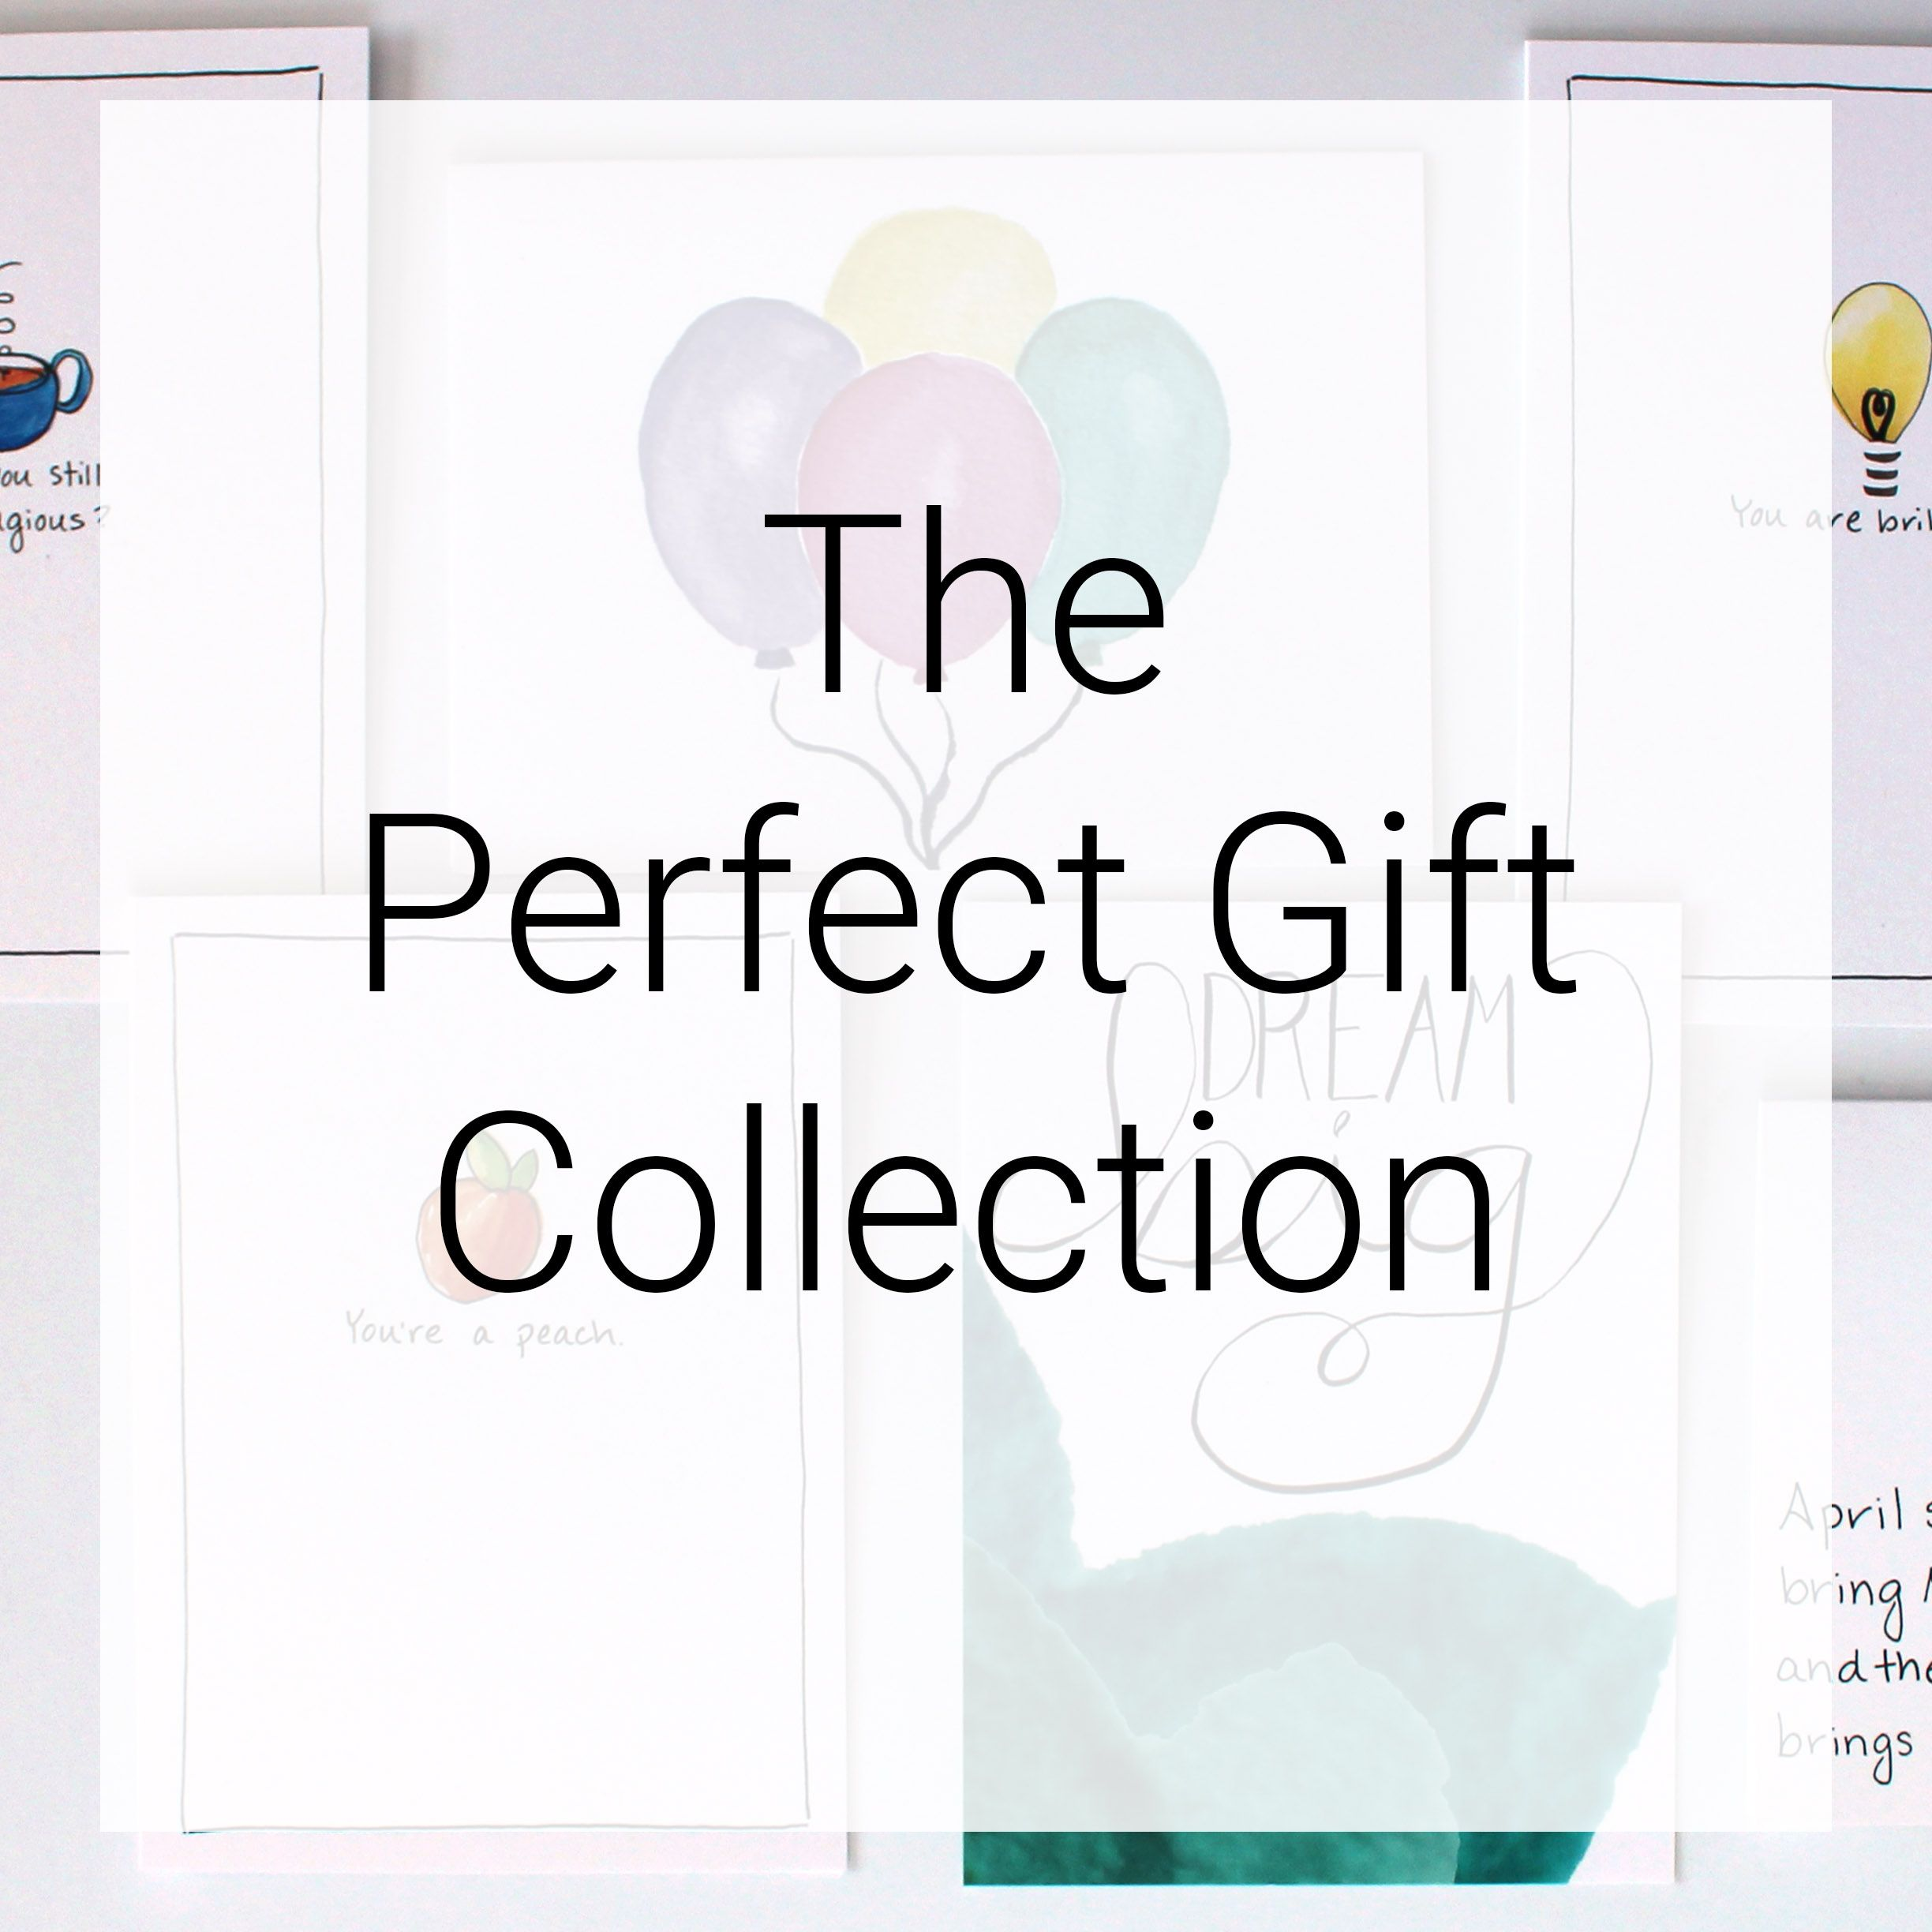 The perfect gift greeting card collection cafe notes company